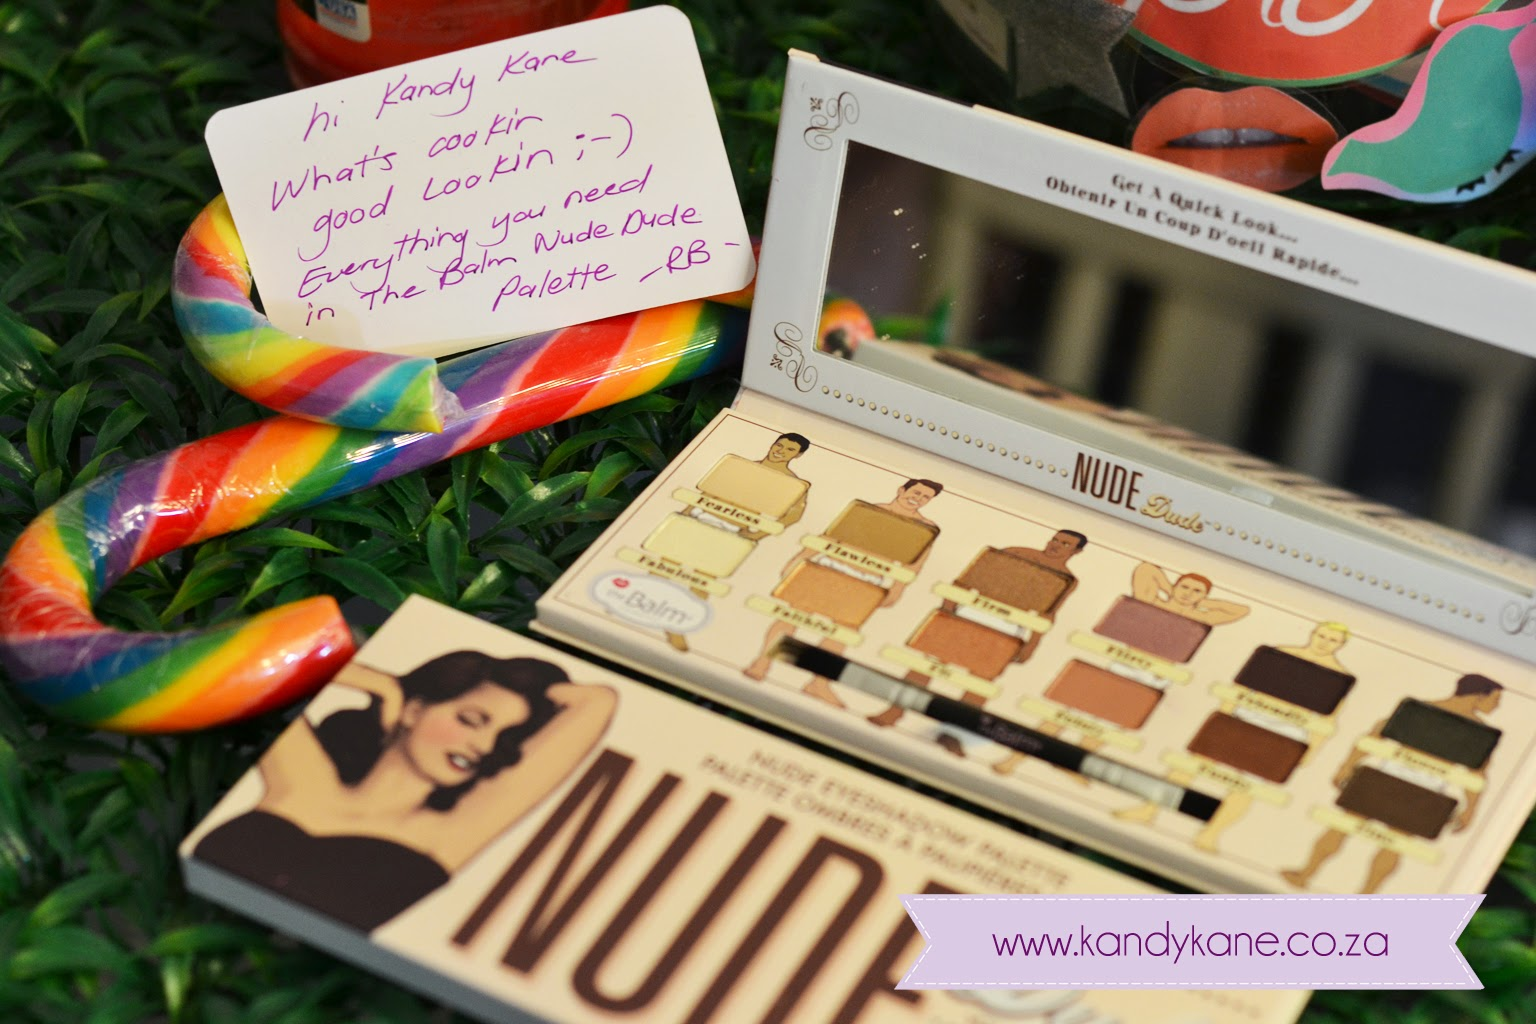 Kandy Kane Makeup Blog Review The Balm U0026quot;Nudeu0026quot; Palettes (from Retailbox.co.za)